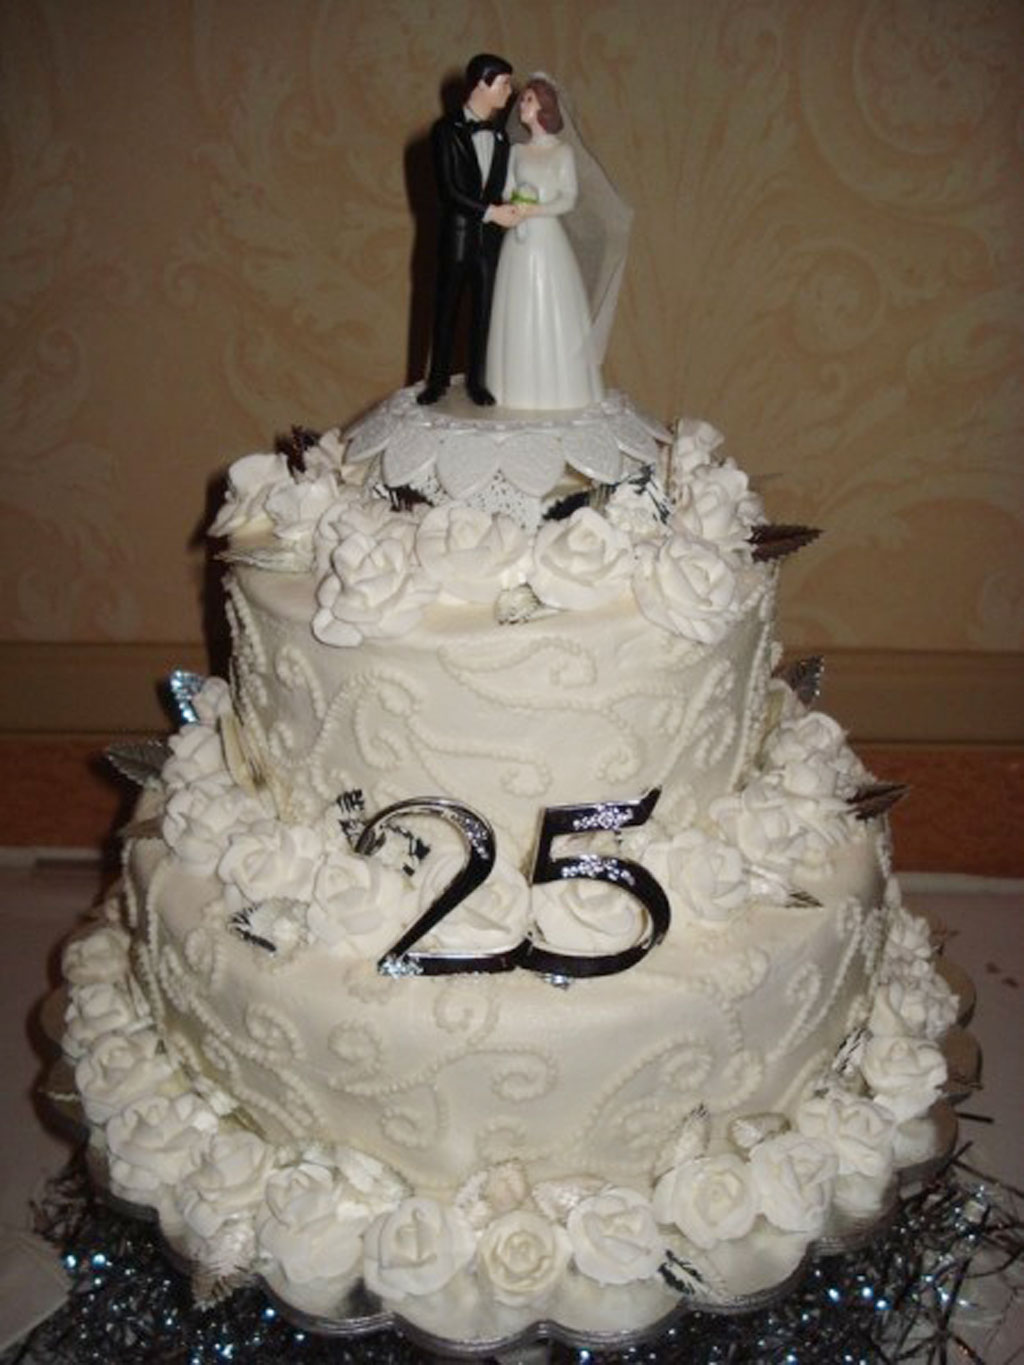 25th wedding anniversary cake ideas 25th wedding anniversary cake ideas wedding cake cake 1072